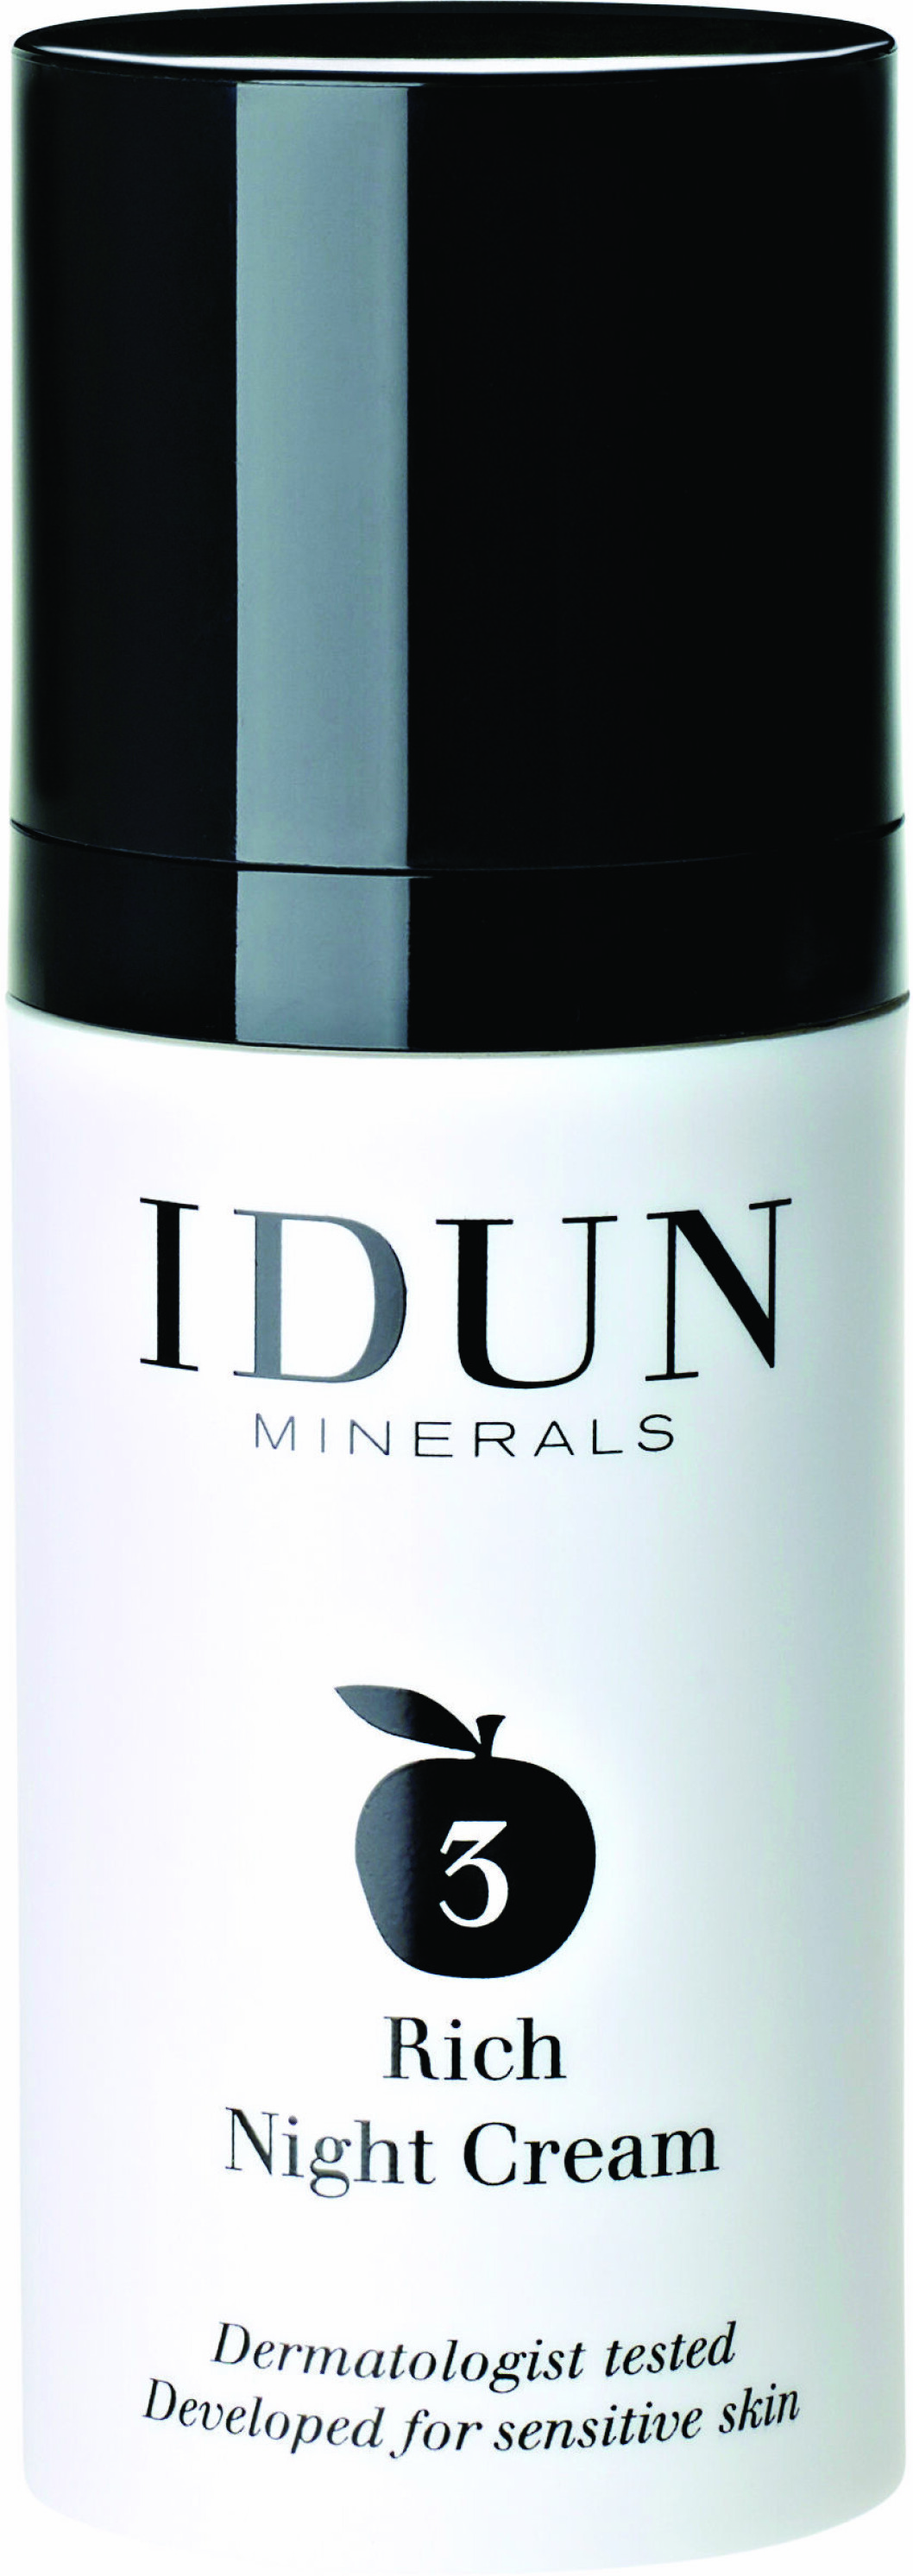 Idun minerals night cream